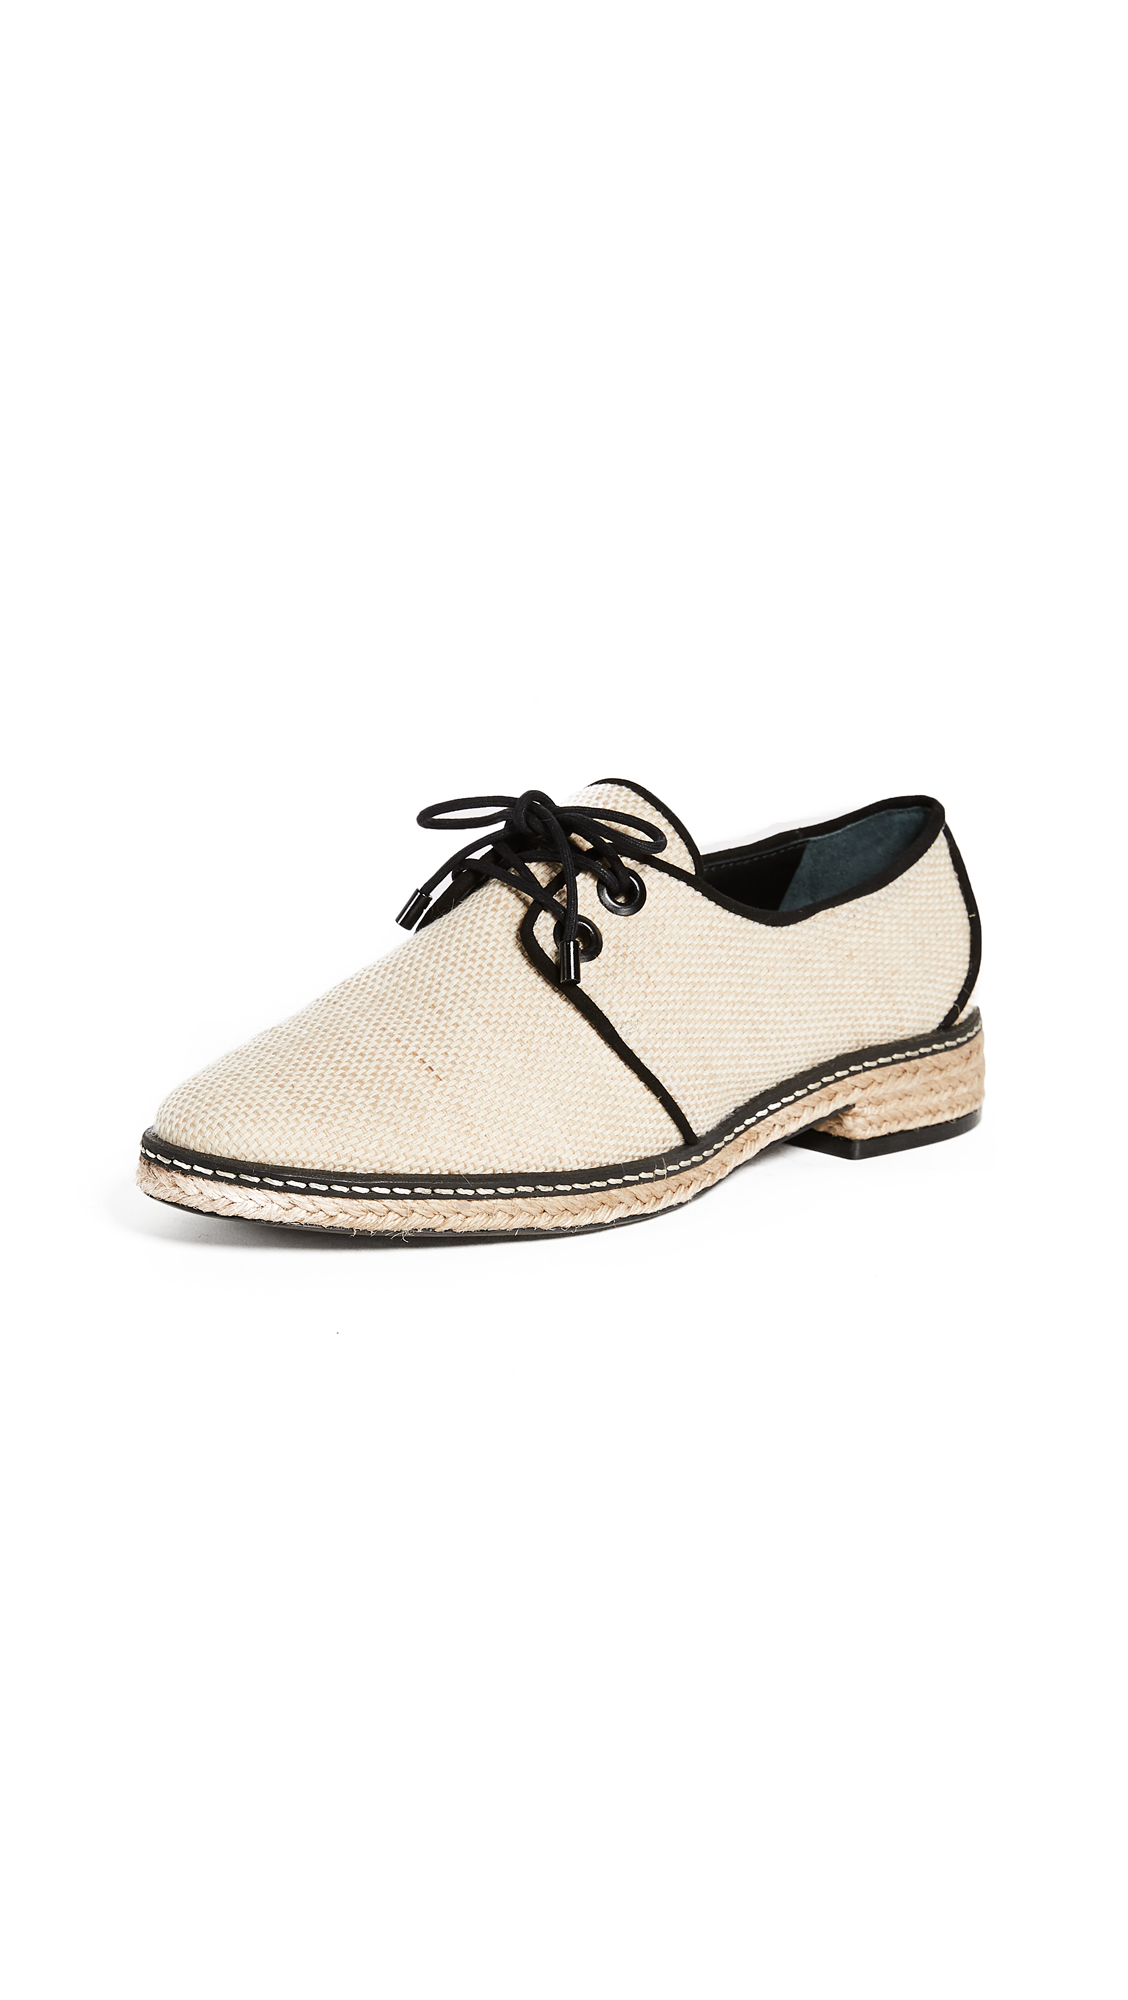 Tory Burch Fawn Oxford Espadrilles - Natural/Black